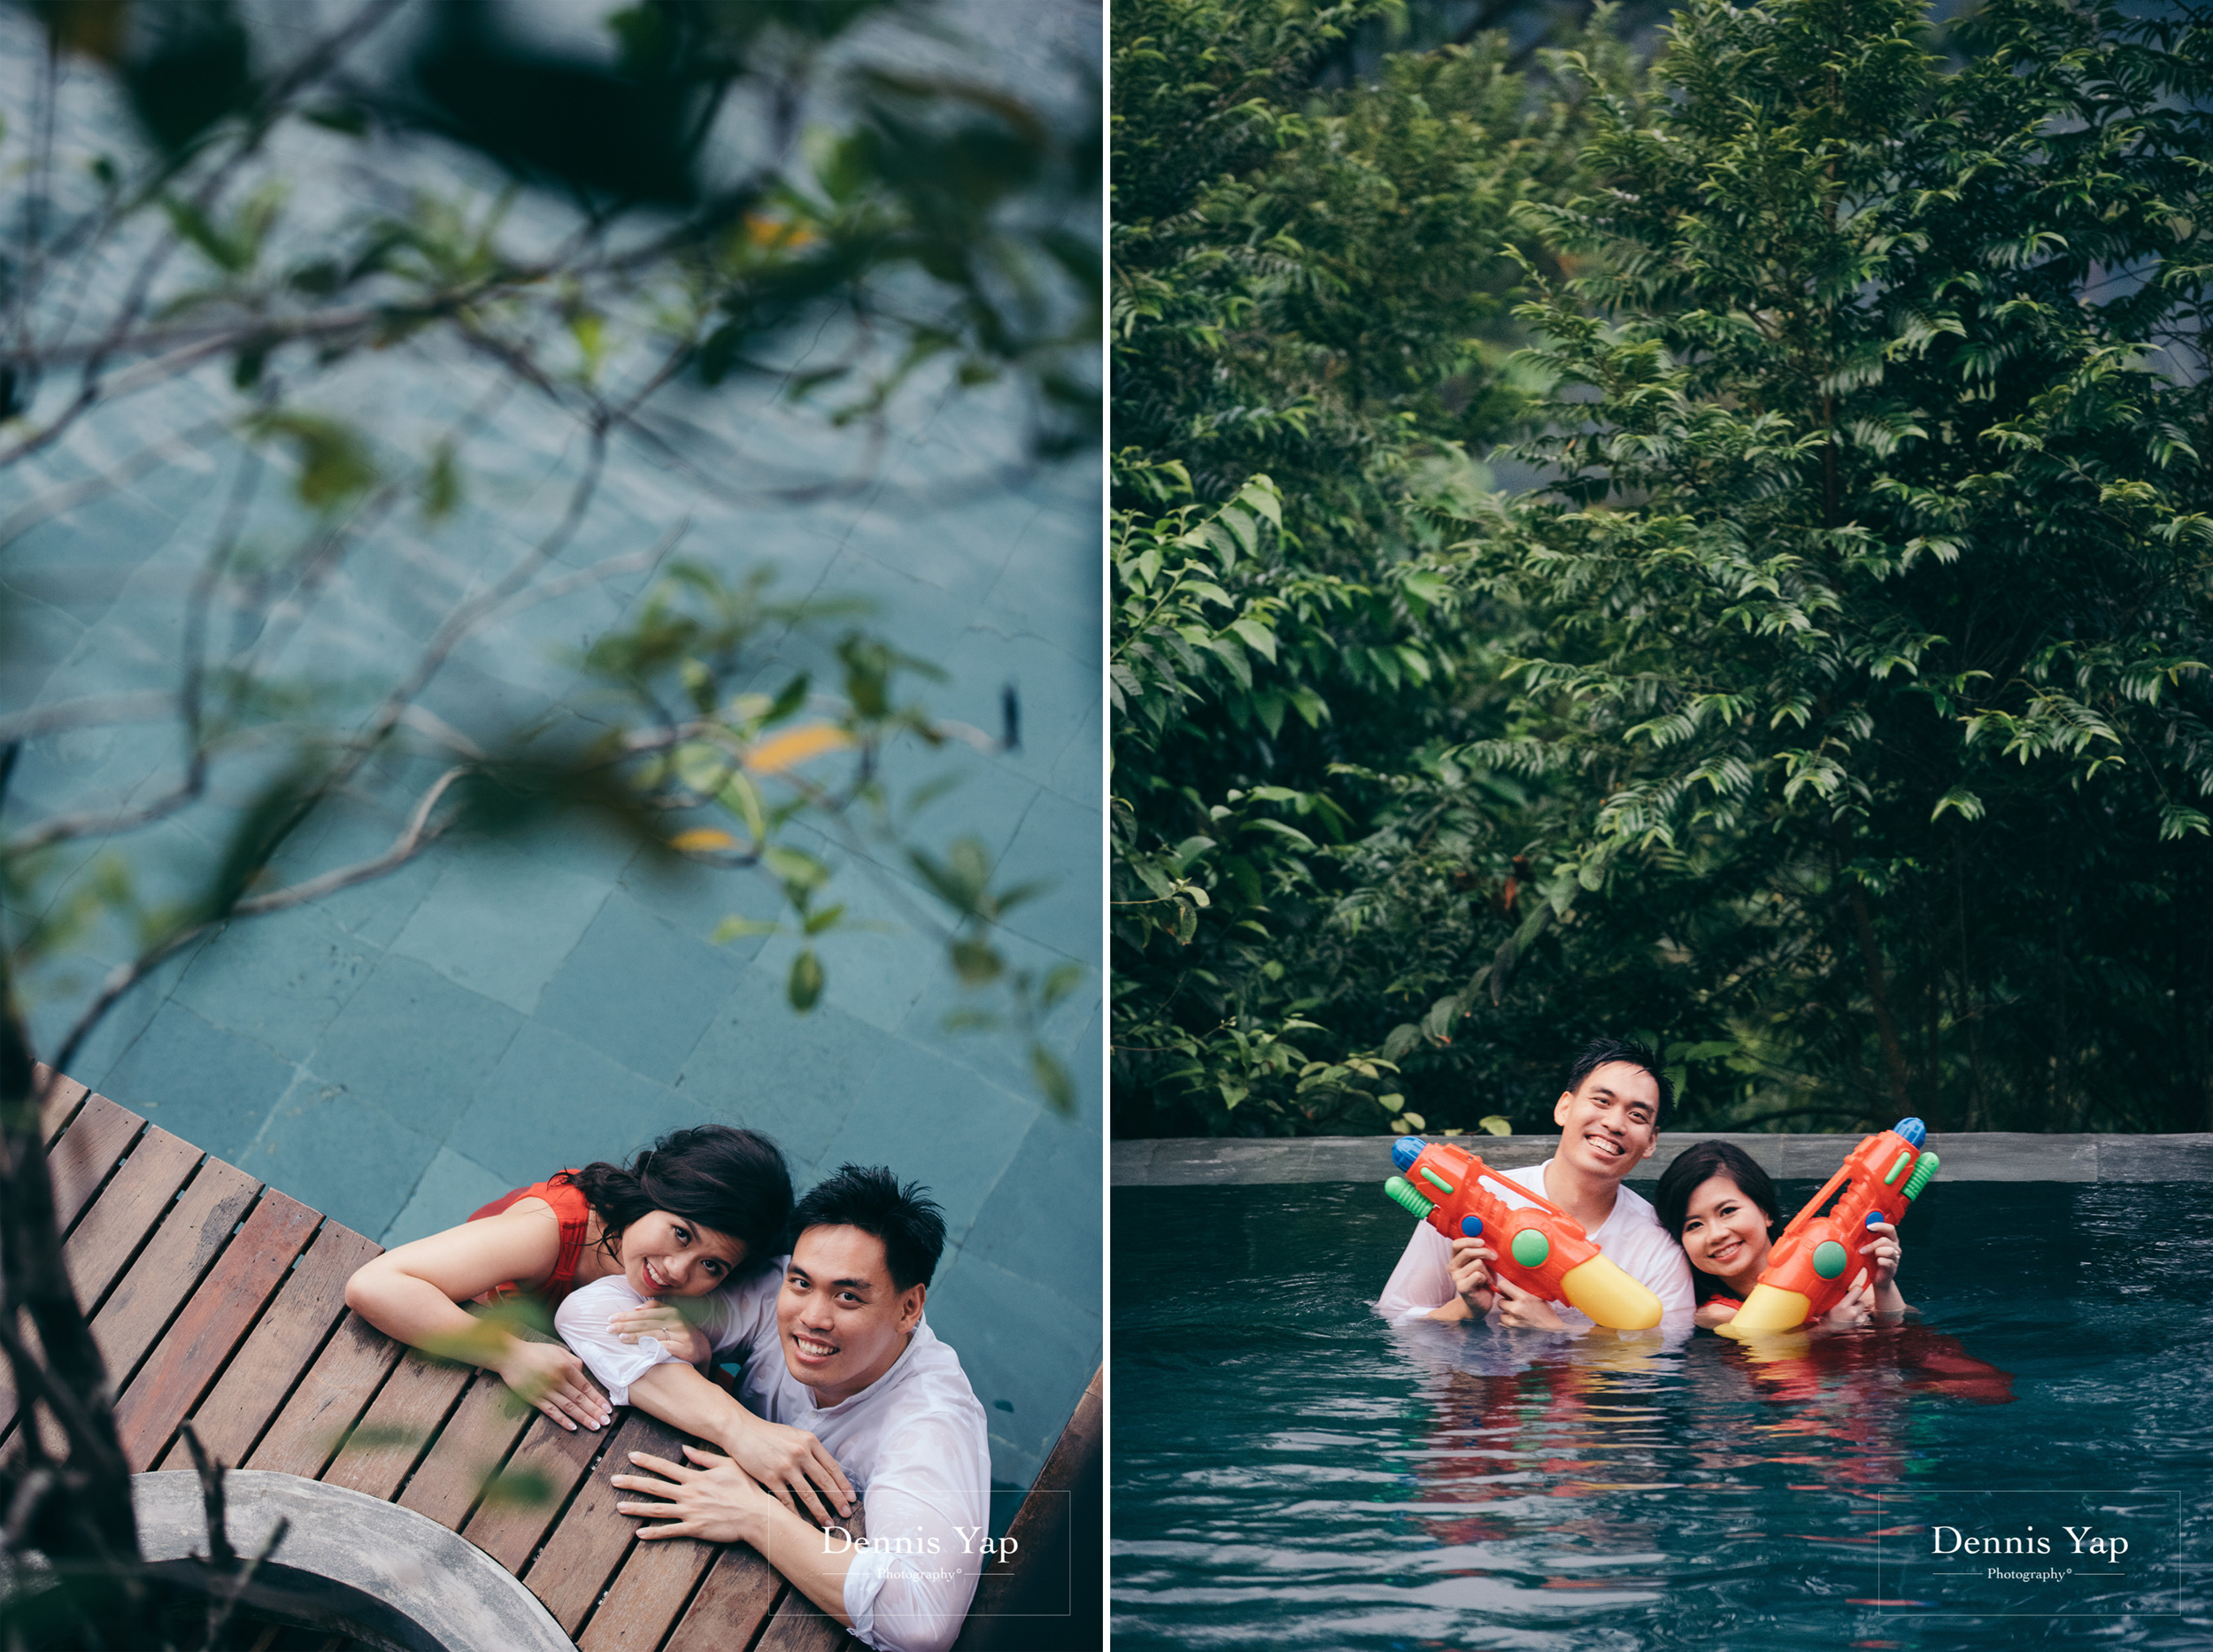 desmond yvonne pre wedding shorea retreat seremban dennis yap photography forest retreat-123.jpg